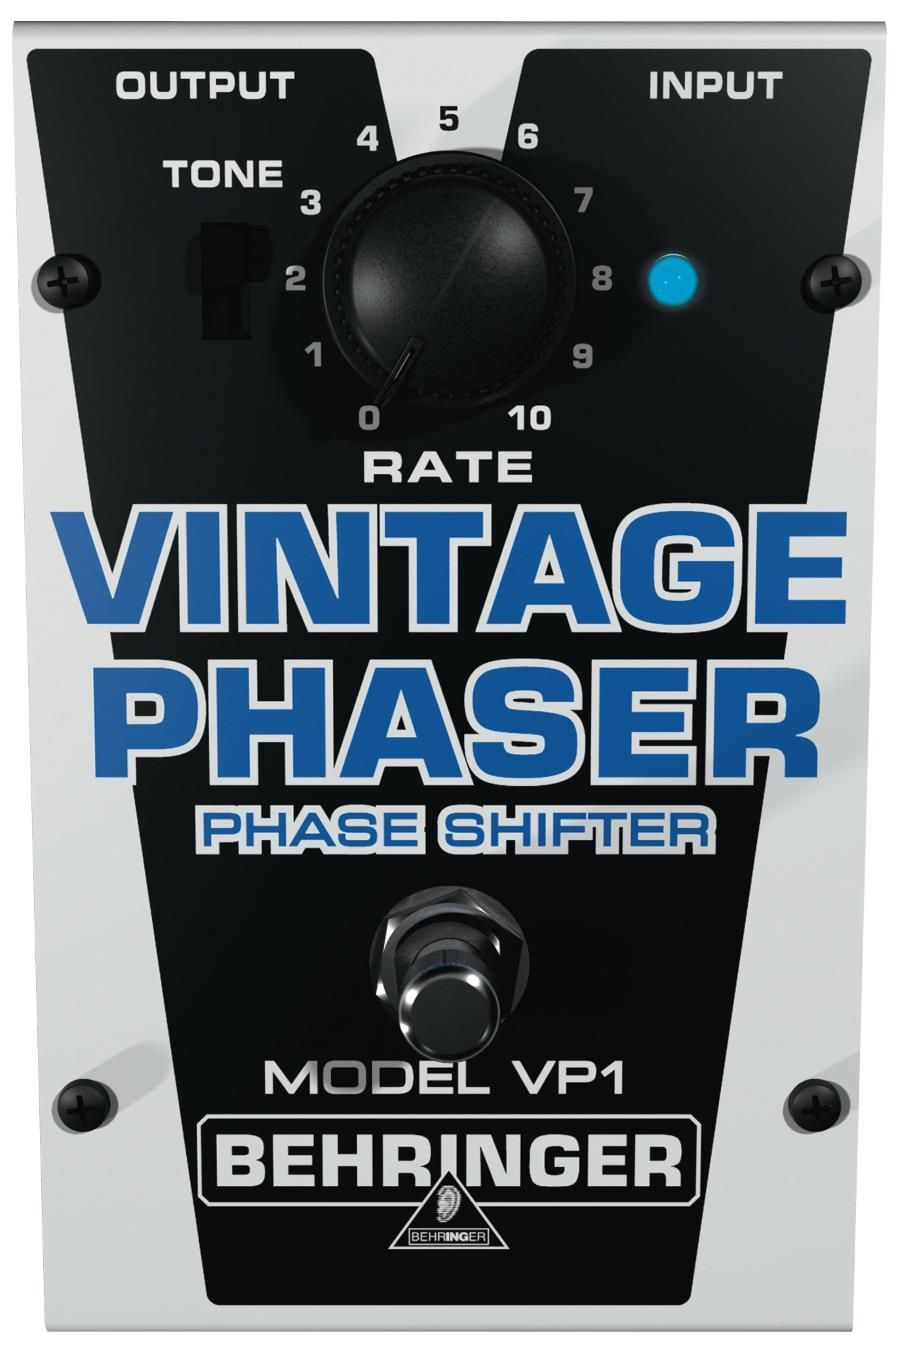 Behringer Vintage Phaser VP1. This pedal is essentially a replica of popular phaser circuits from the '60s, but priced to be super affordable. For a detailed Guide to Phaser Pedals see http://www.guitarsite.com/best-phaser-pedal/